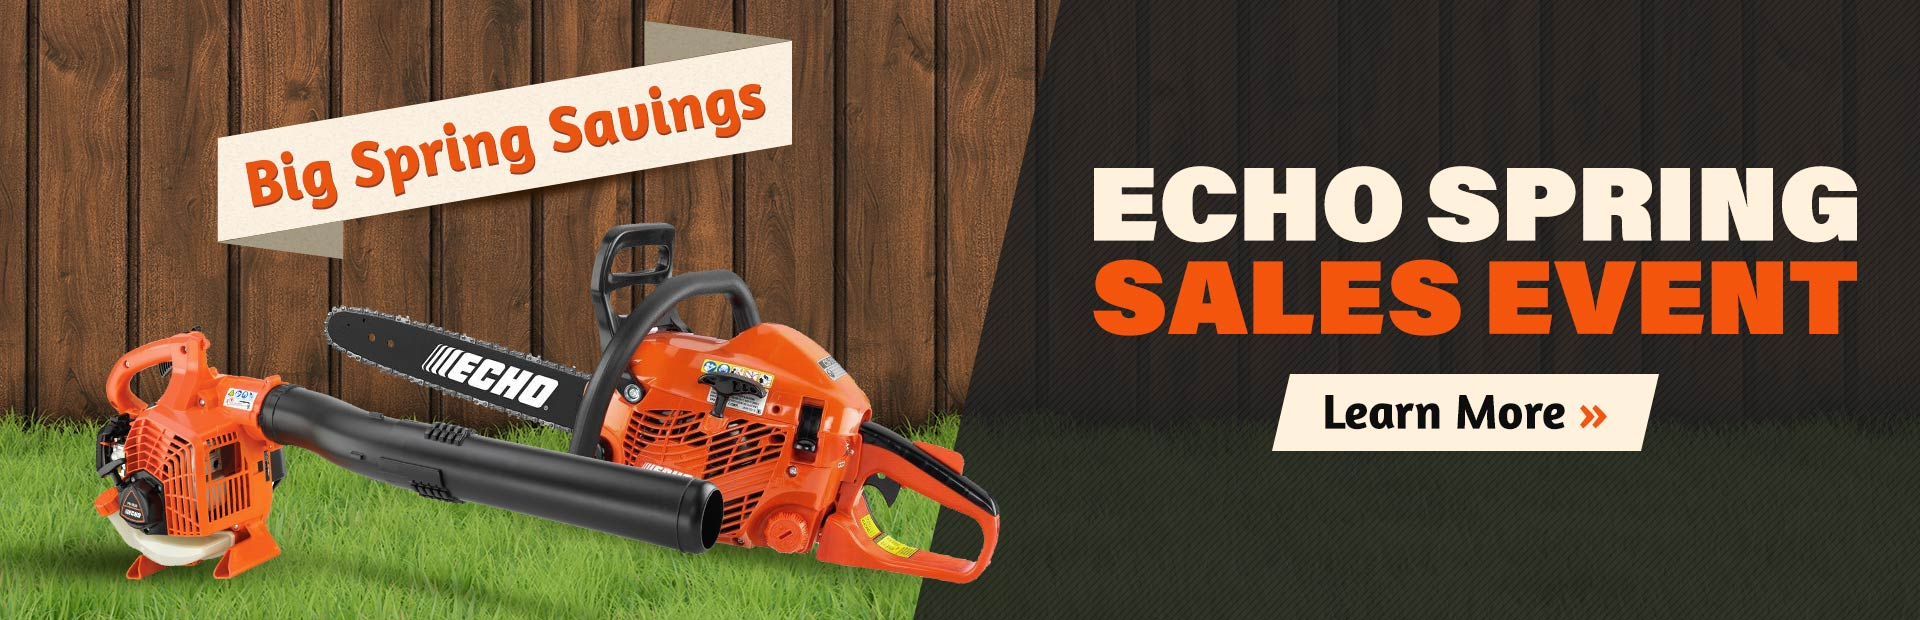 ECHO Spring Sales Event: Click here to learn more.